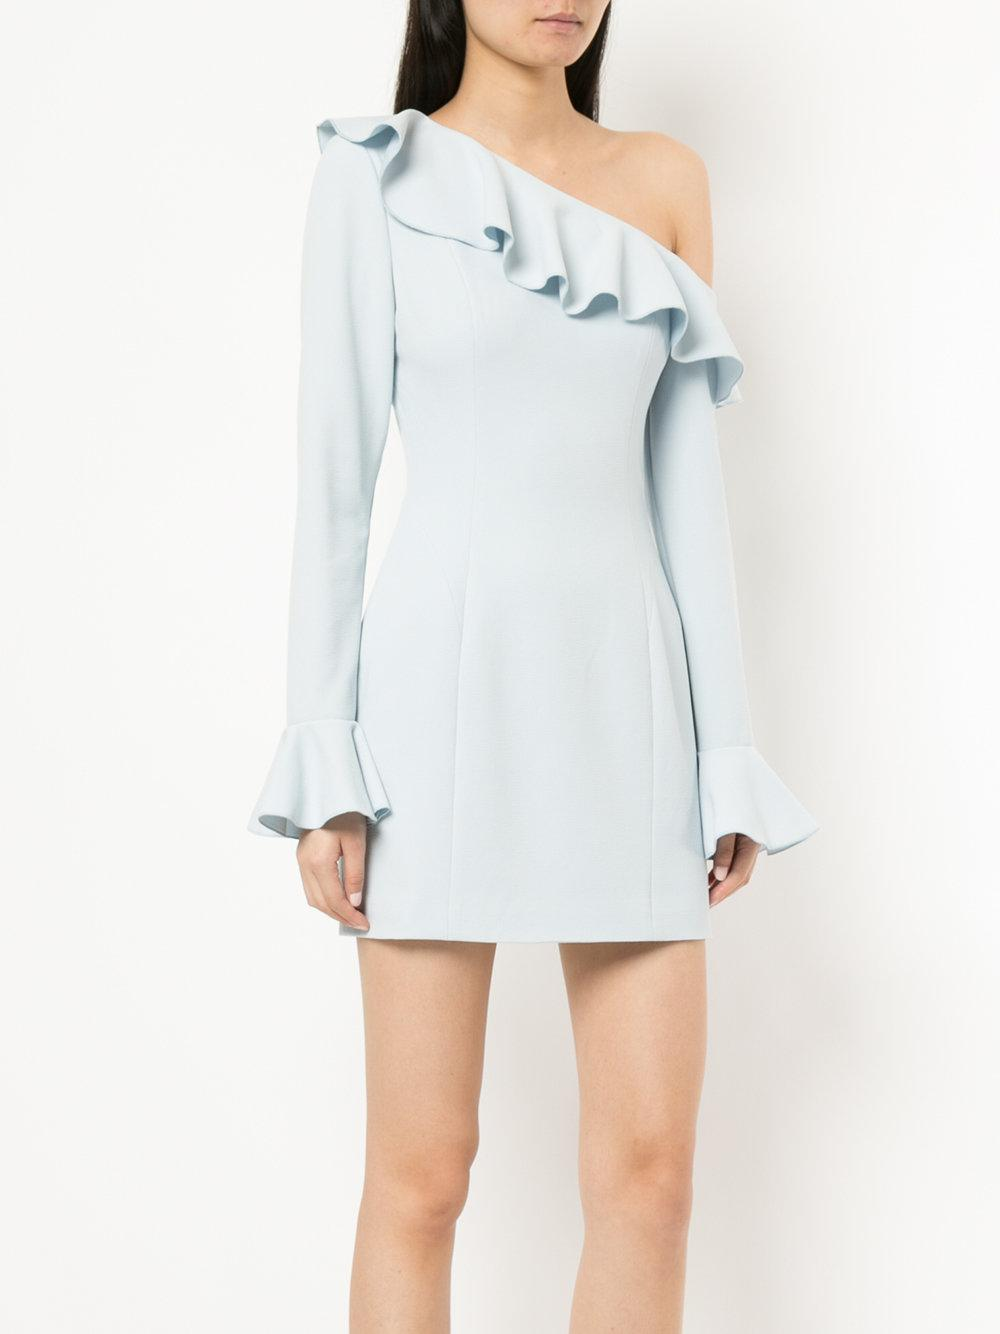 Rebecca Vallance Aegean One Shoulder mini dress Wiki For Sale For Sale Wholesale Price Pay With Paypal Cheap Online Free Shipping Best Wholesale Q6v8Xk8